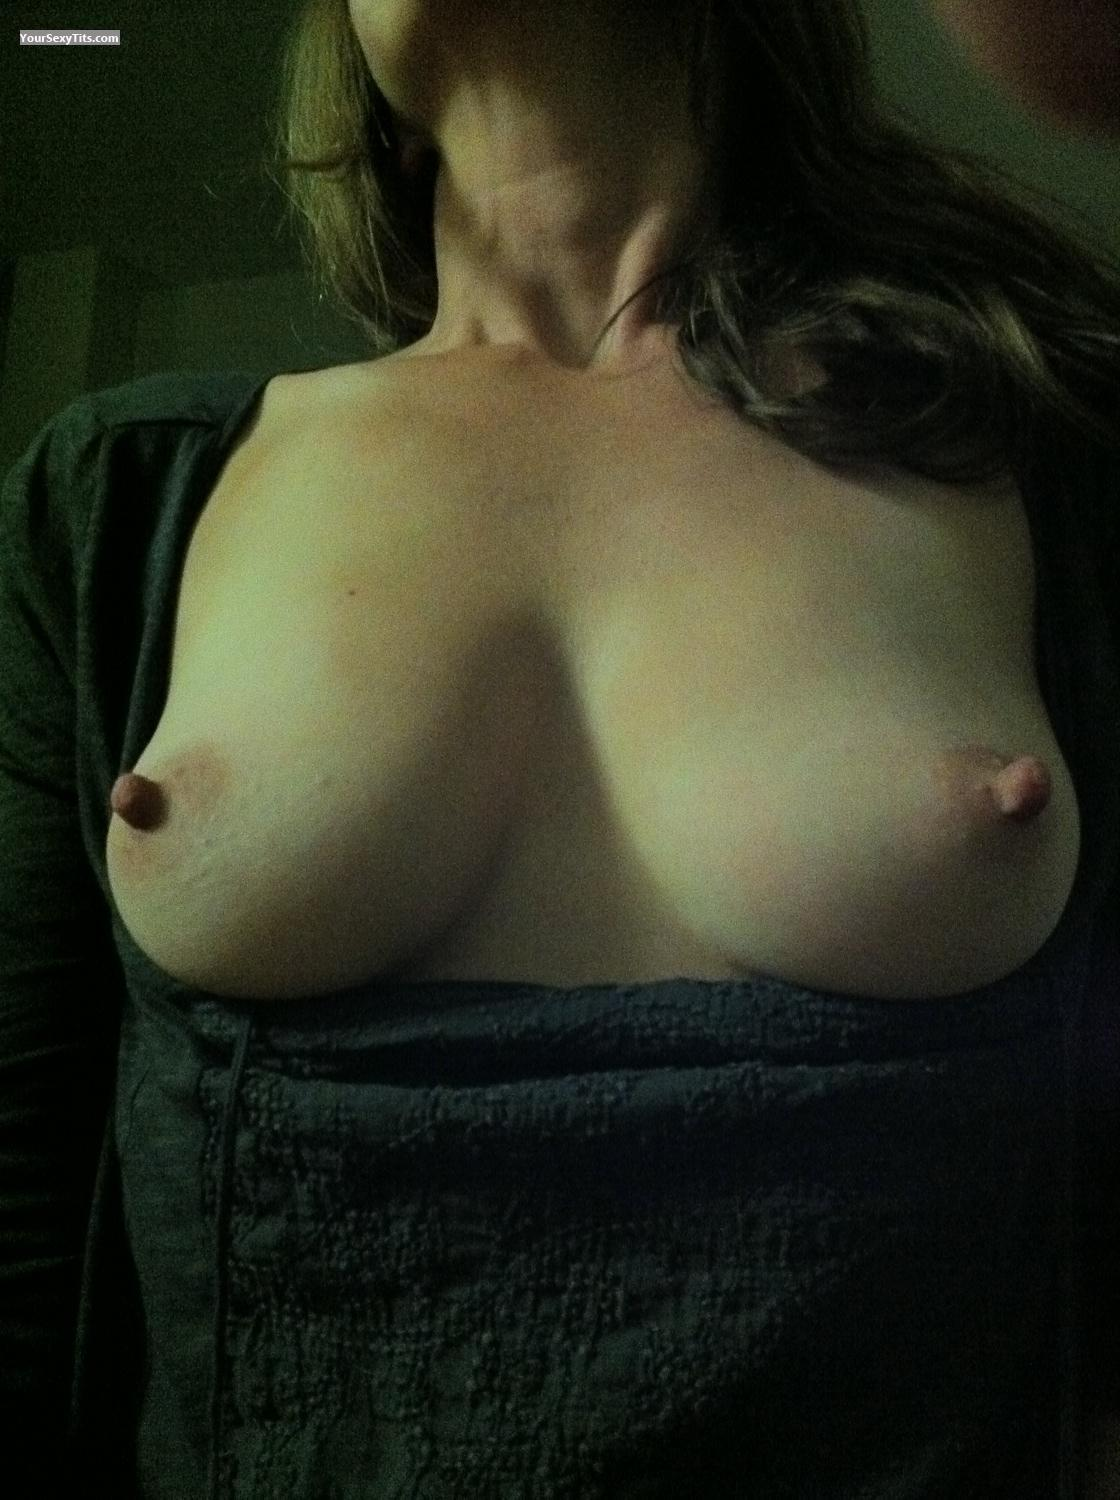 Tit Flash: Small Tits By IPhone - Clara from United States